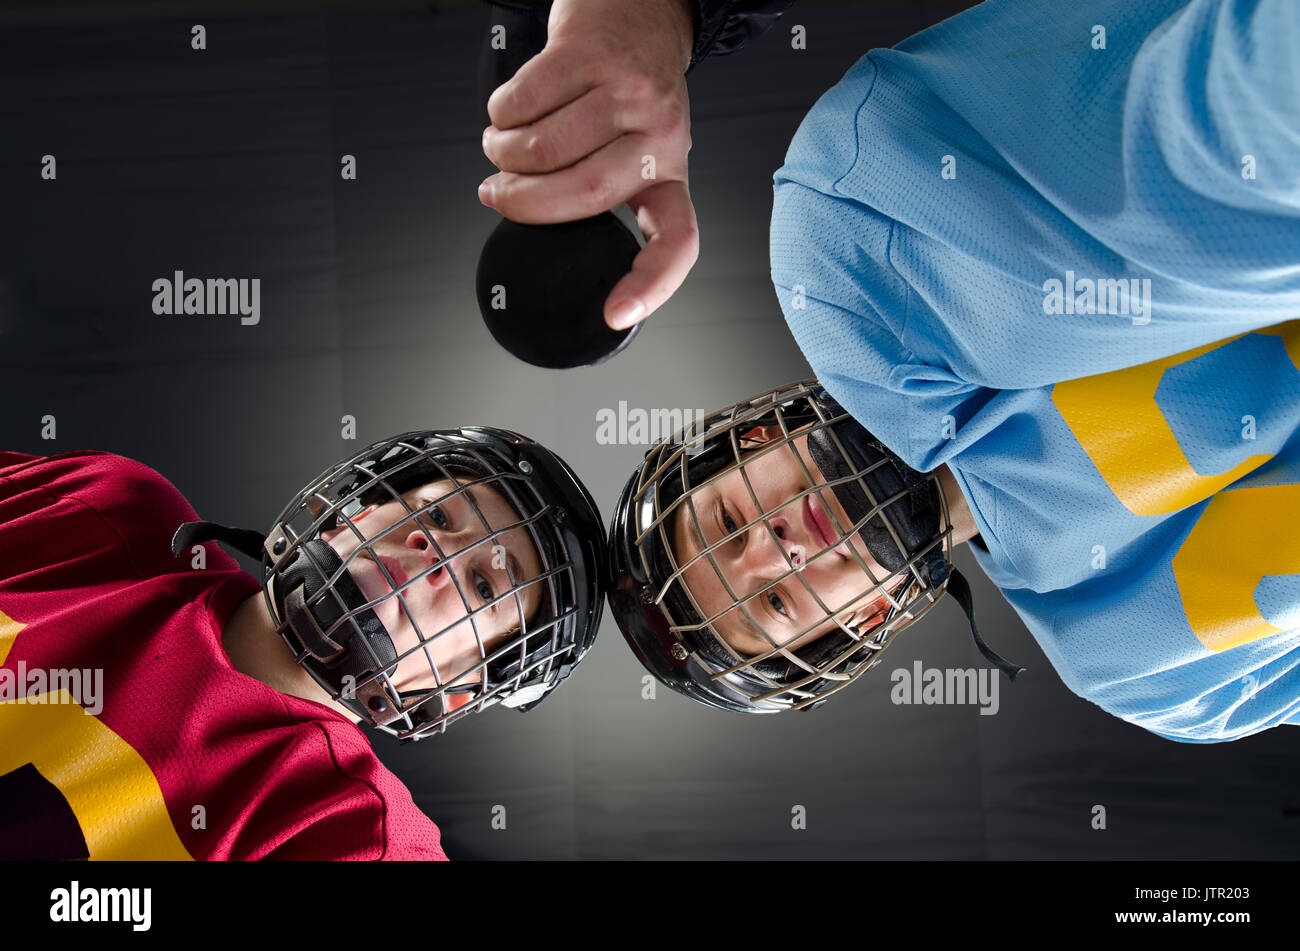 Cloesup of a hockey faceoff with teenage hockey players and puck - Stock Image